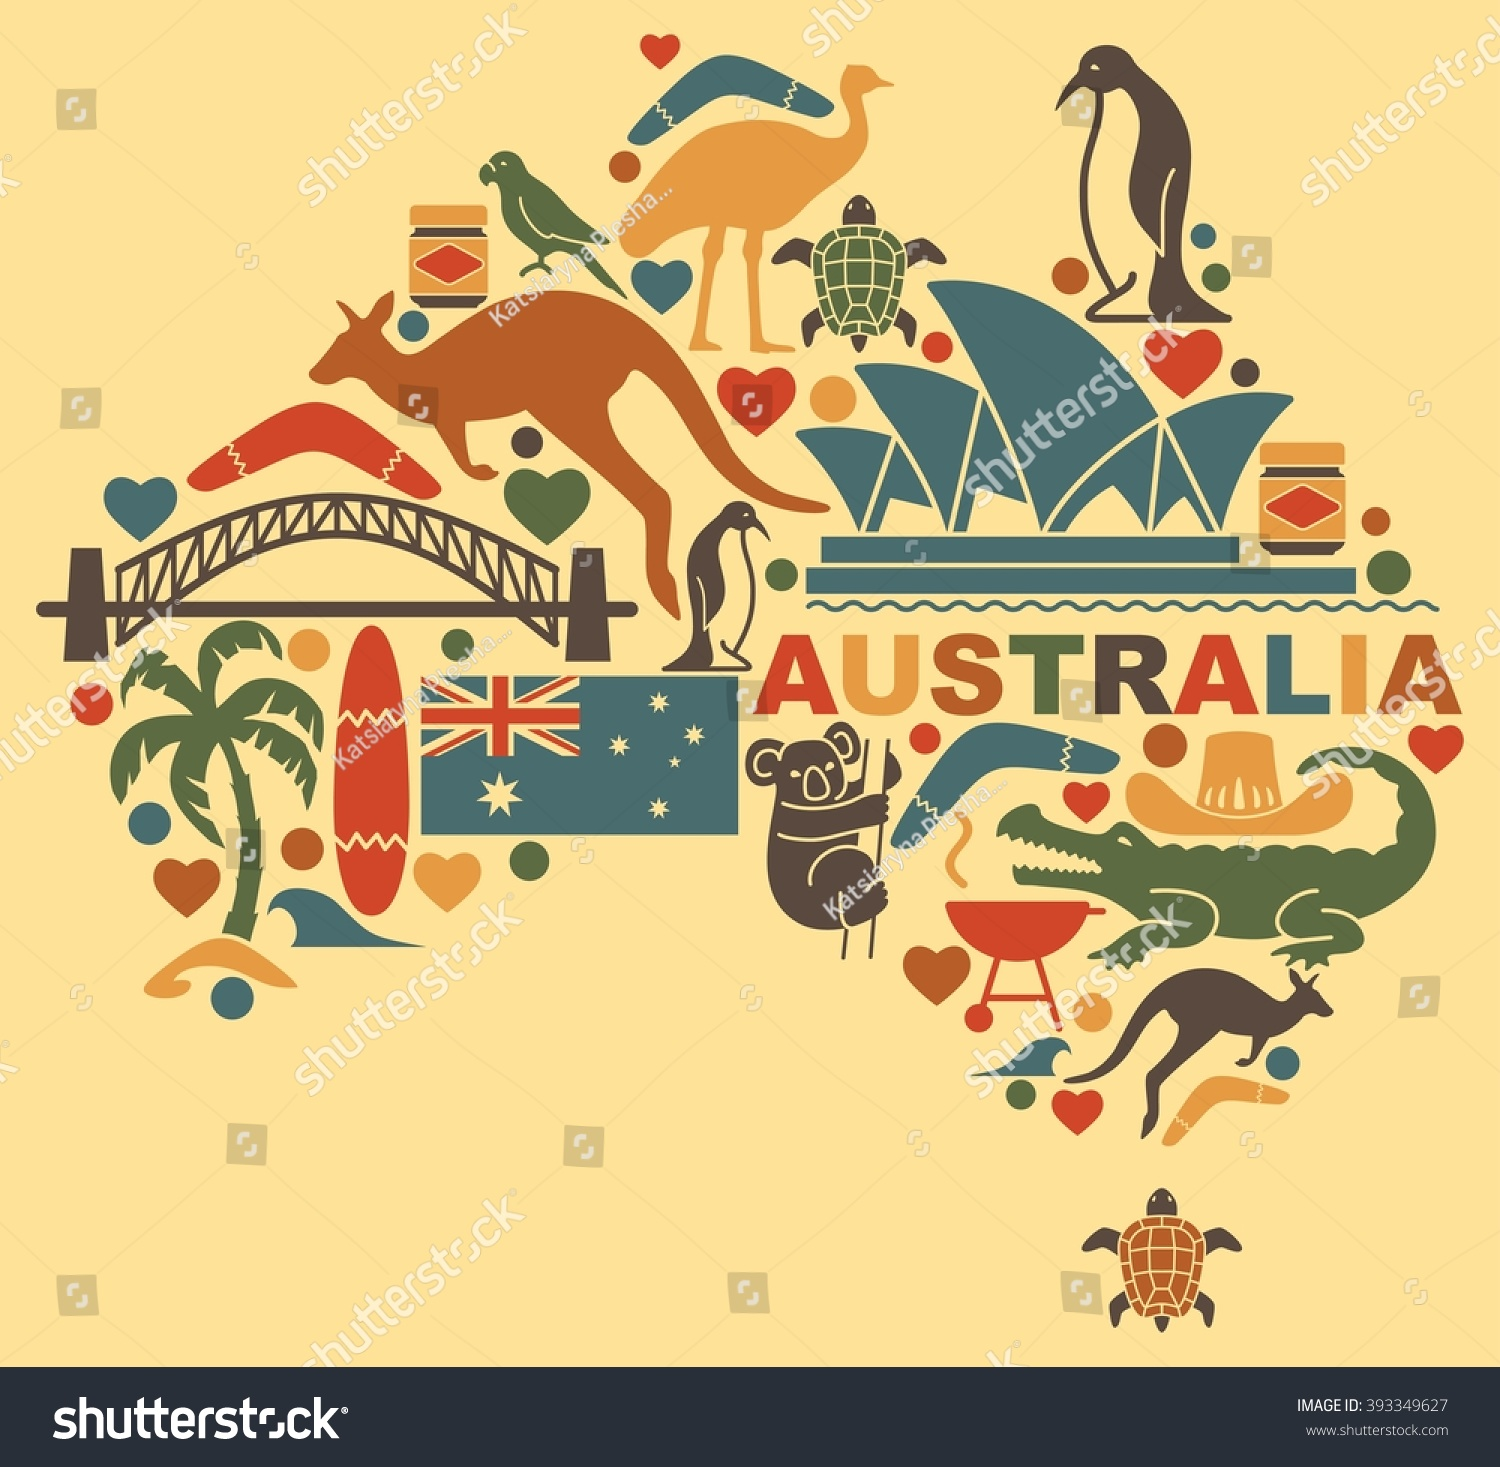 Traditional symbols australian culture nature form image for Australian traditions